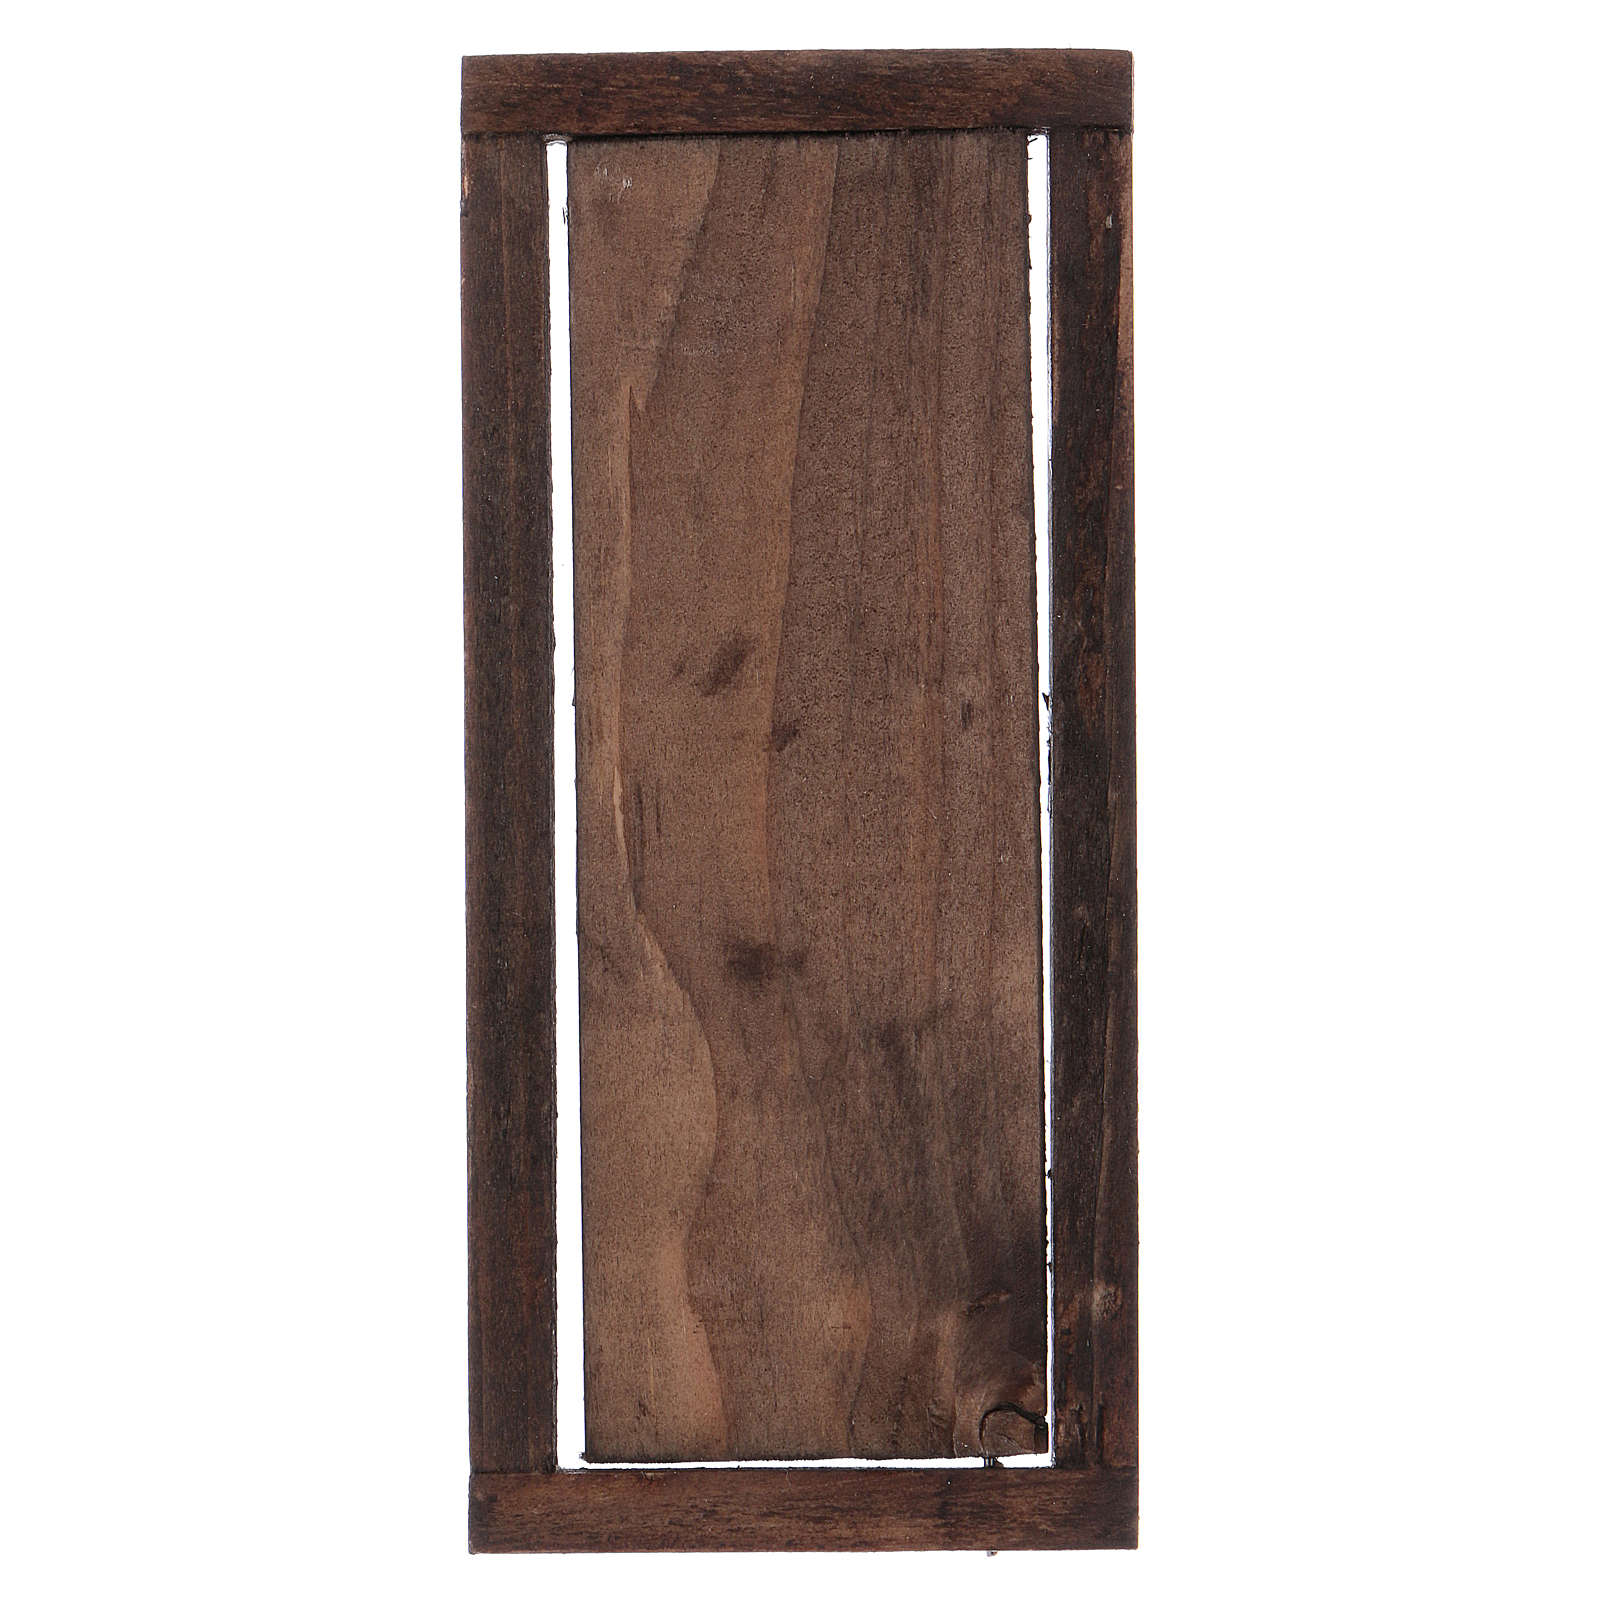 Nativity accessory, wooden door with frame 13 5x5 5cm